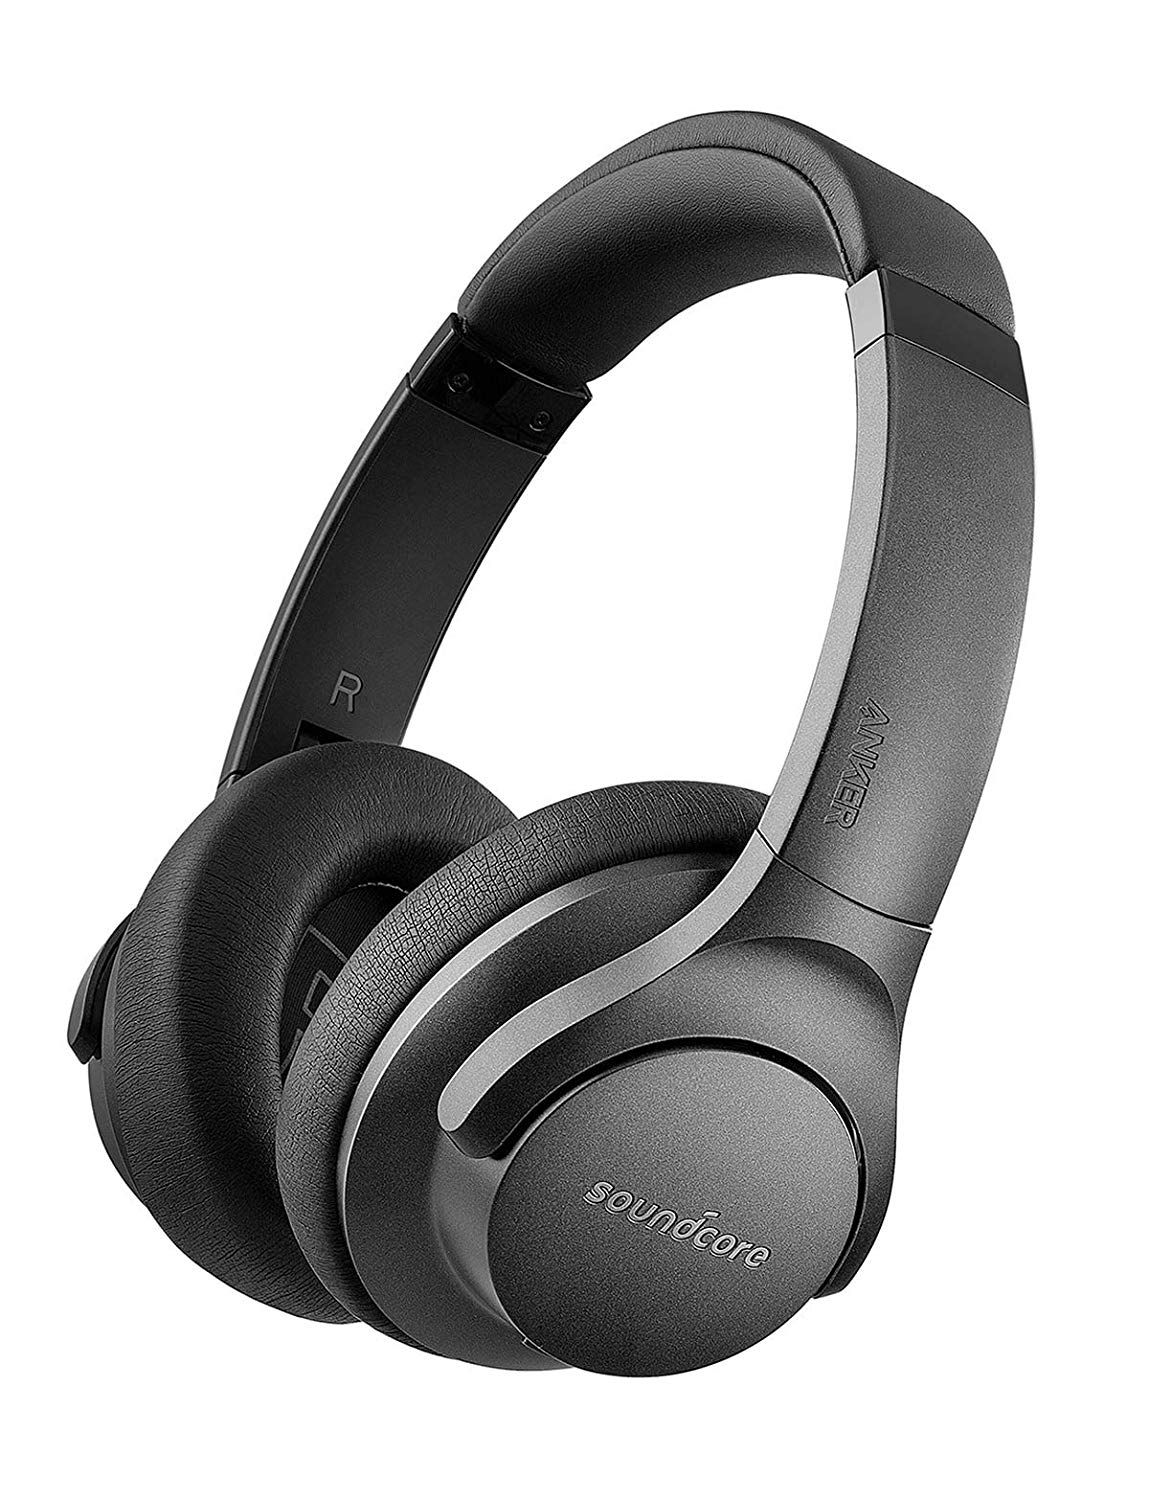 Soundcore Life 2 Active Noise Cancelling OverEar Wireless